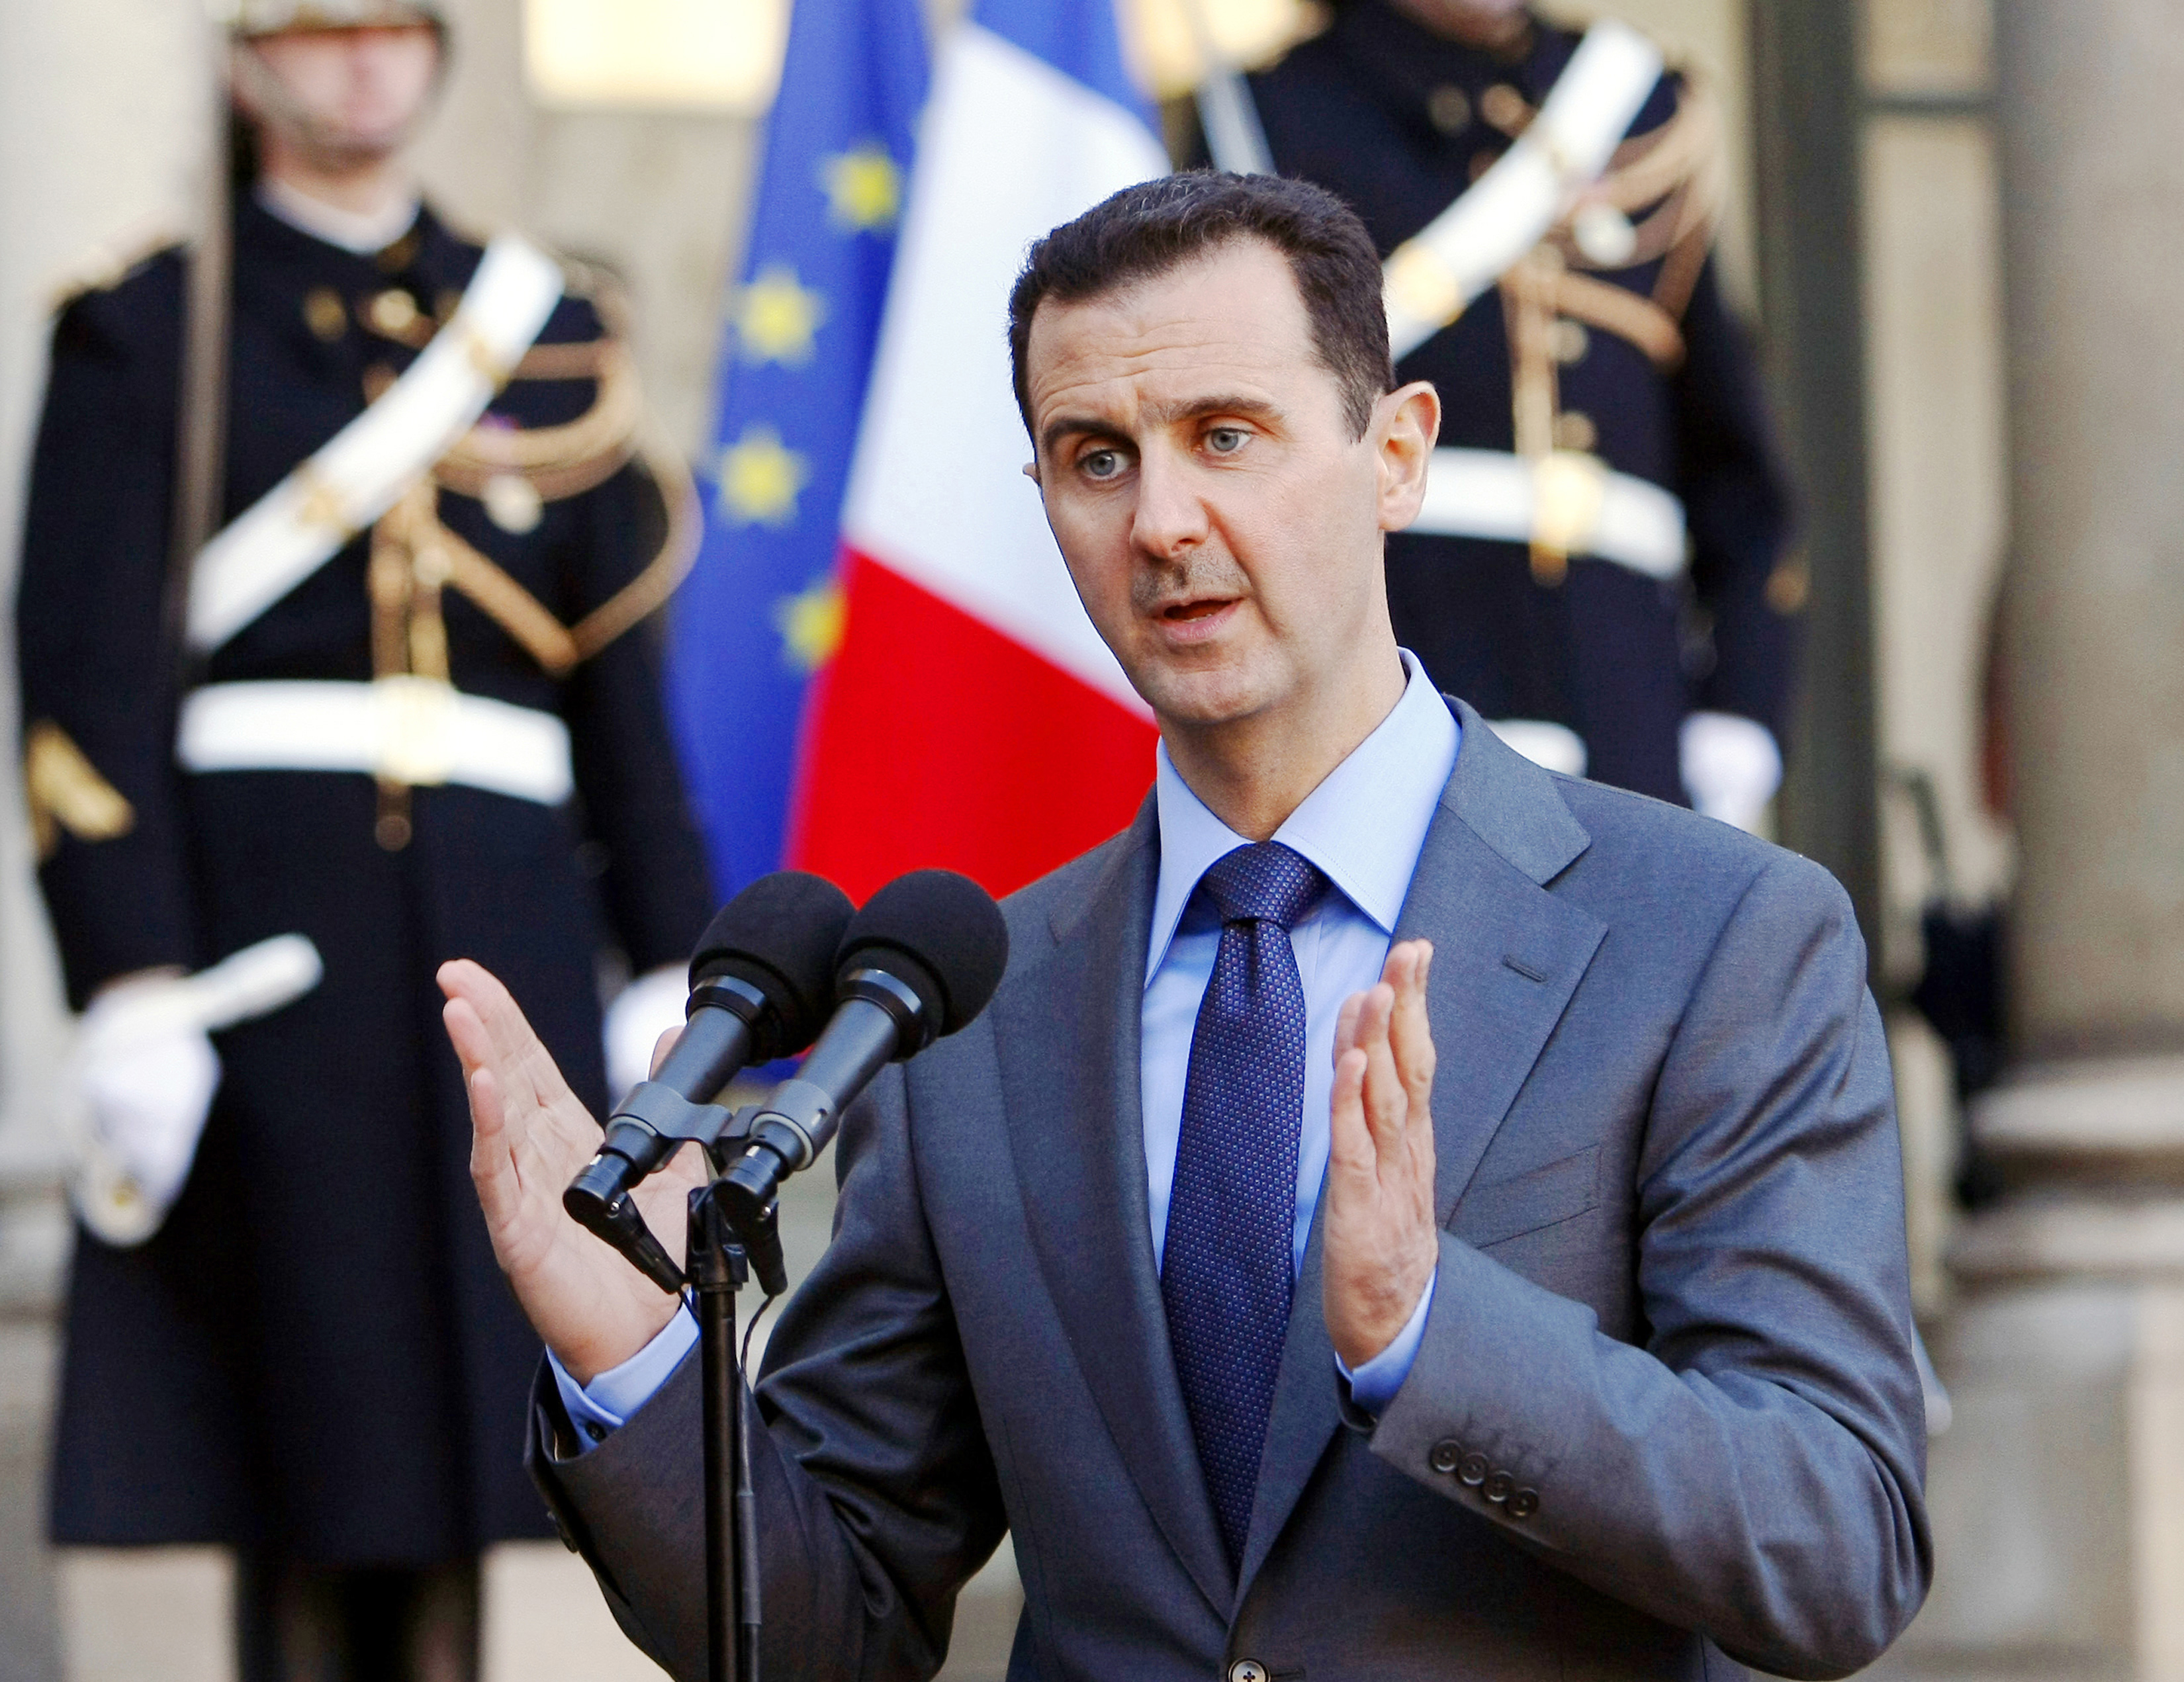 FILE - In this Thursday Dec. 9, 2010 file photo, Syria President Bashar al-Assad addresses reporters following his meeting with French President Nicolas Sarkozy at the Elysee Palace in Paris, France. Paris prosecutors have opened a preliminary investigation into French government accusations that Syrian President Bashar Assad's government has committed crimes against humanity. The prosecutor's office said Wednesday the investigation is based on photos taken by a former Syrian officer who fled in 2013 and focuses on atrocities allegedly committed between 2011 and 2013. (AP Photo/Remy de la Mauviniere, File)